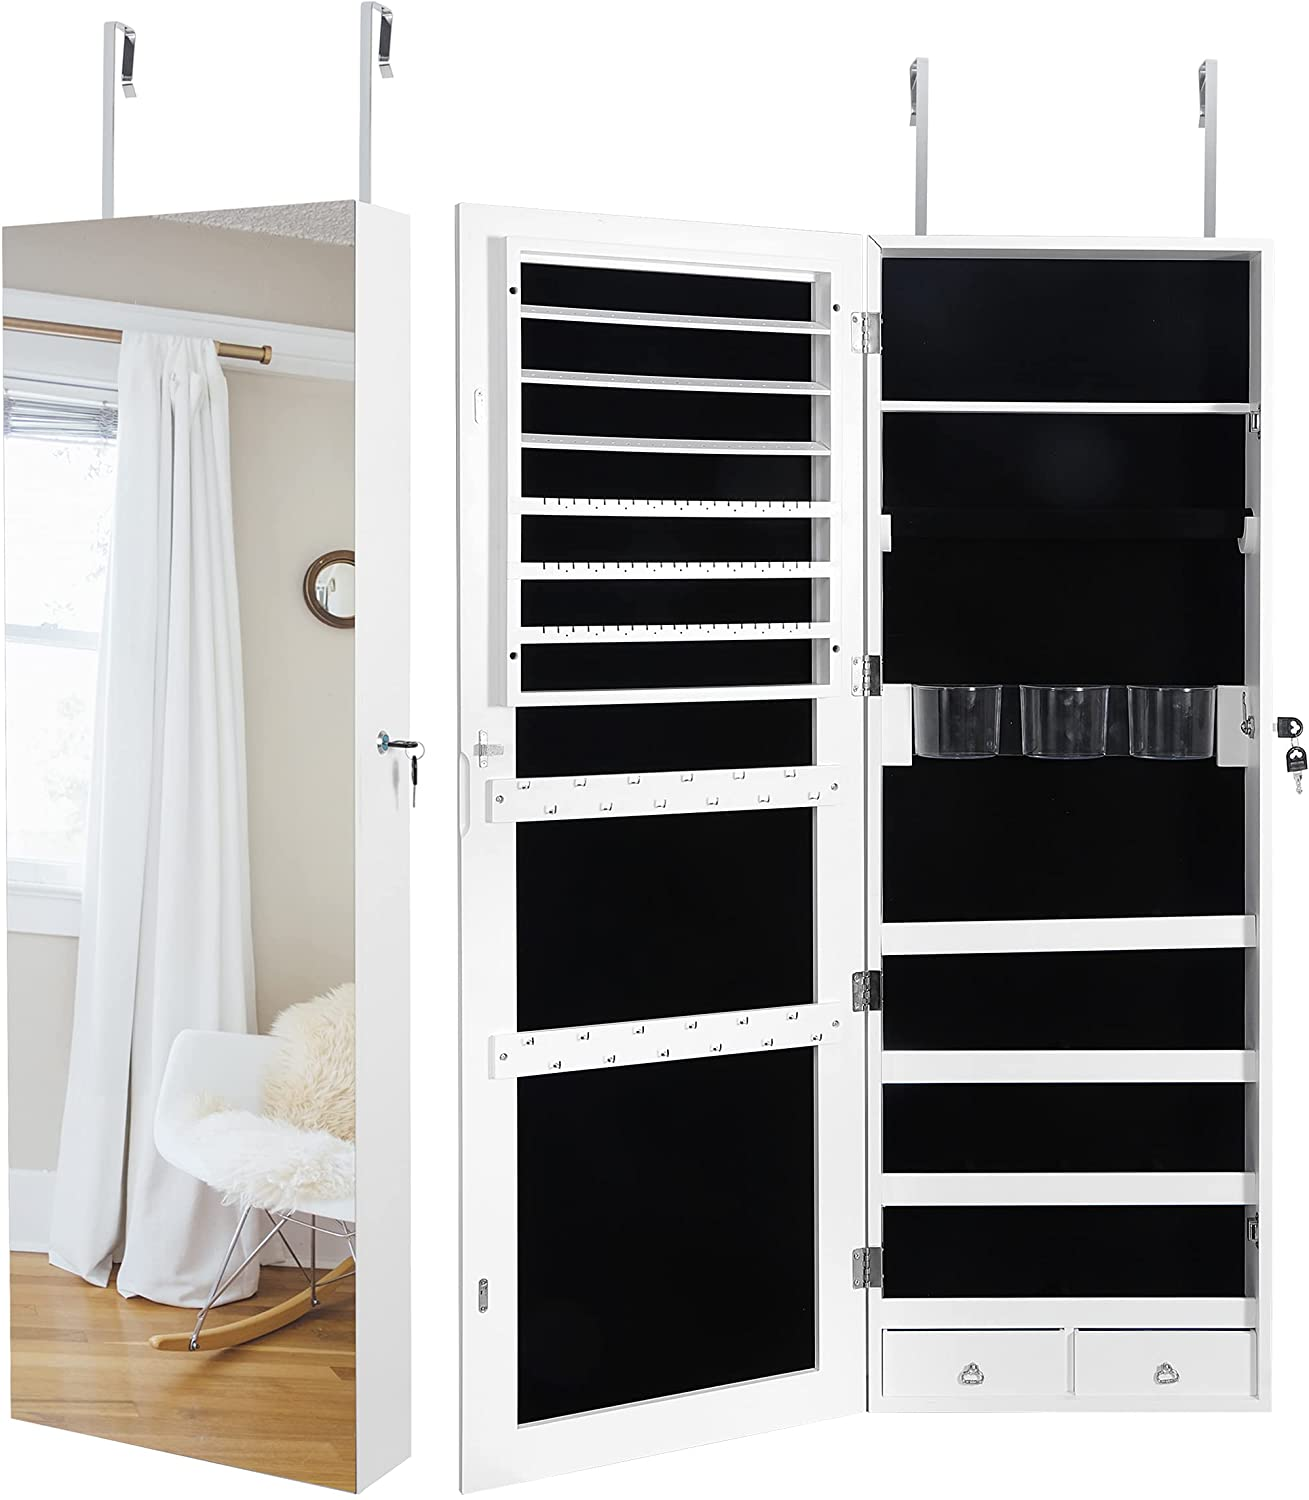 SUPER DEAL Upgraded 2in1 Mail order Jewelry Cabinet Door Max 44% OFF 47.3